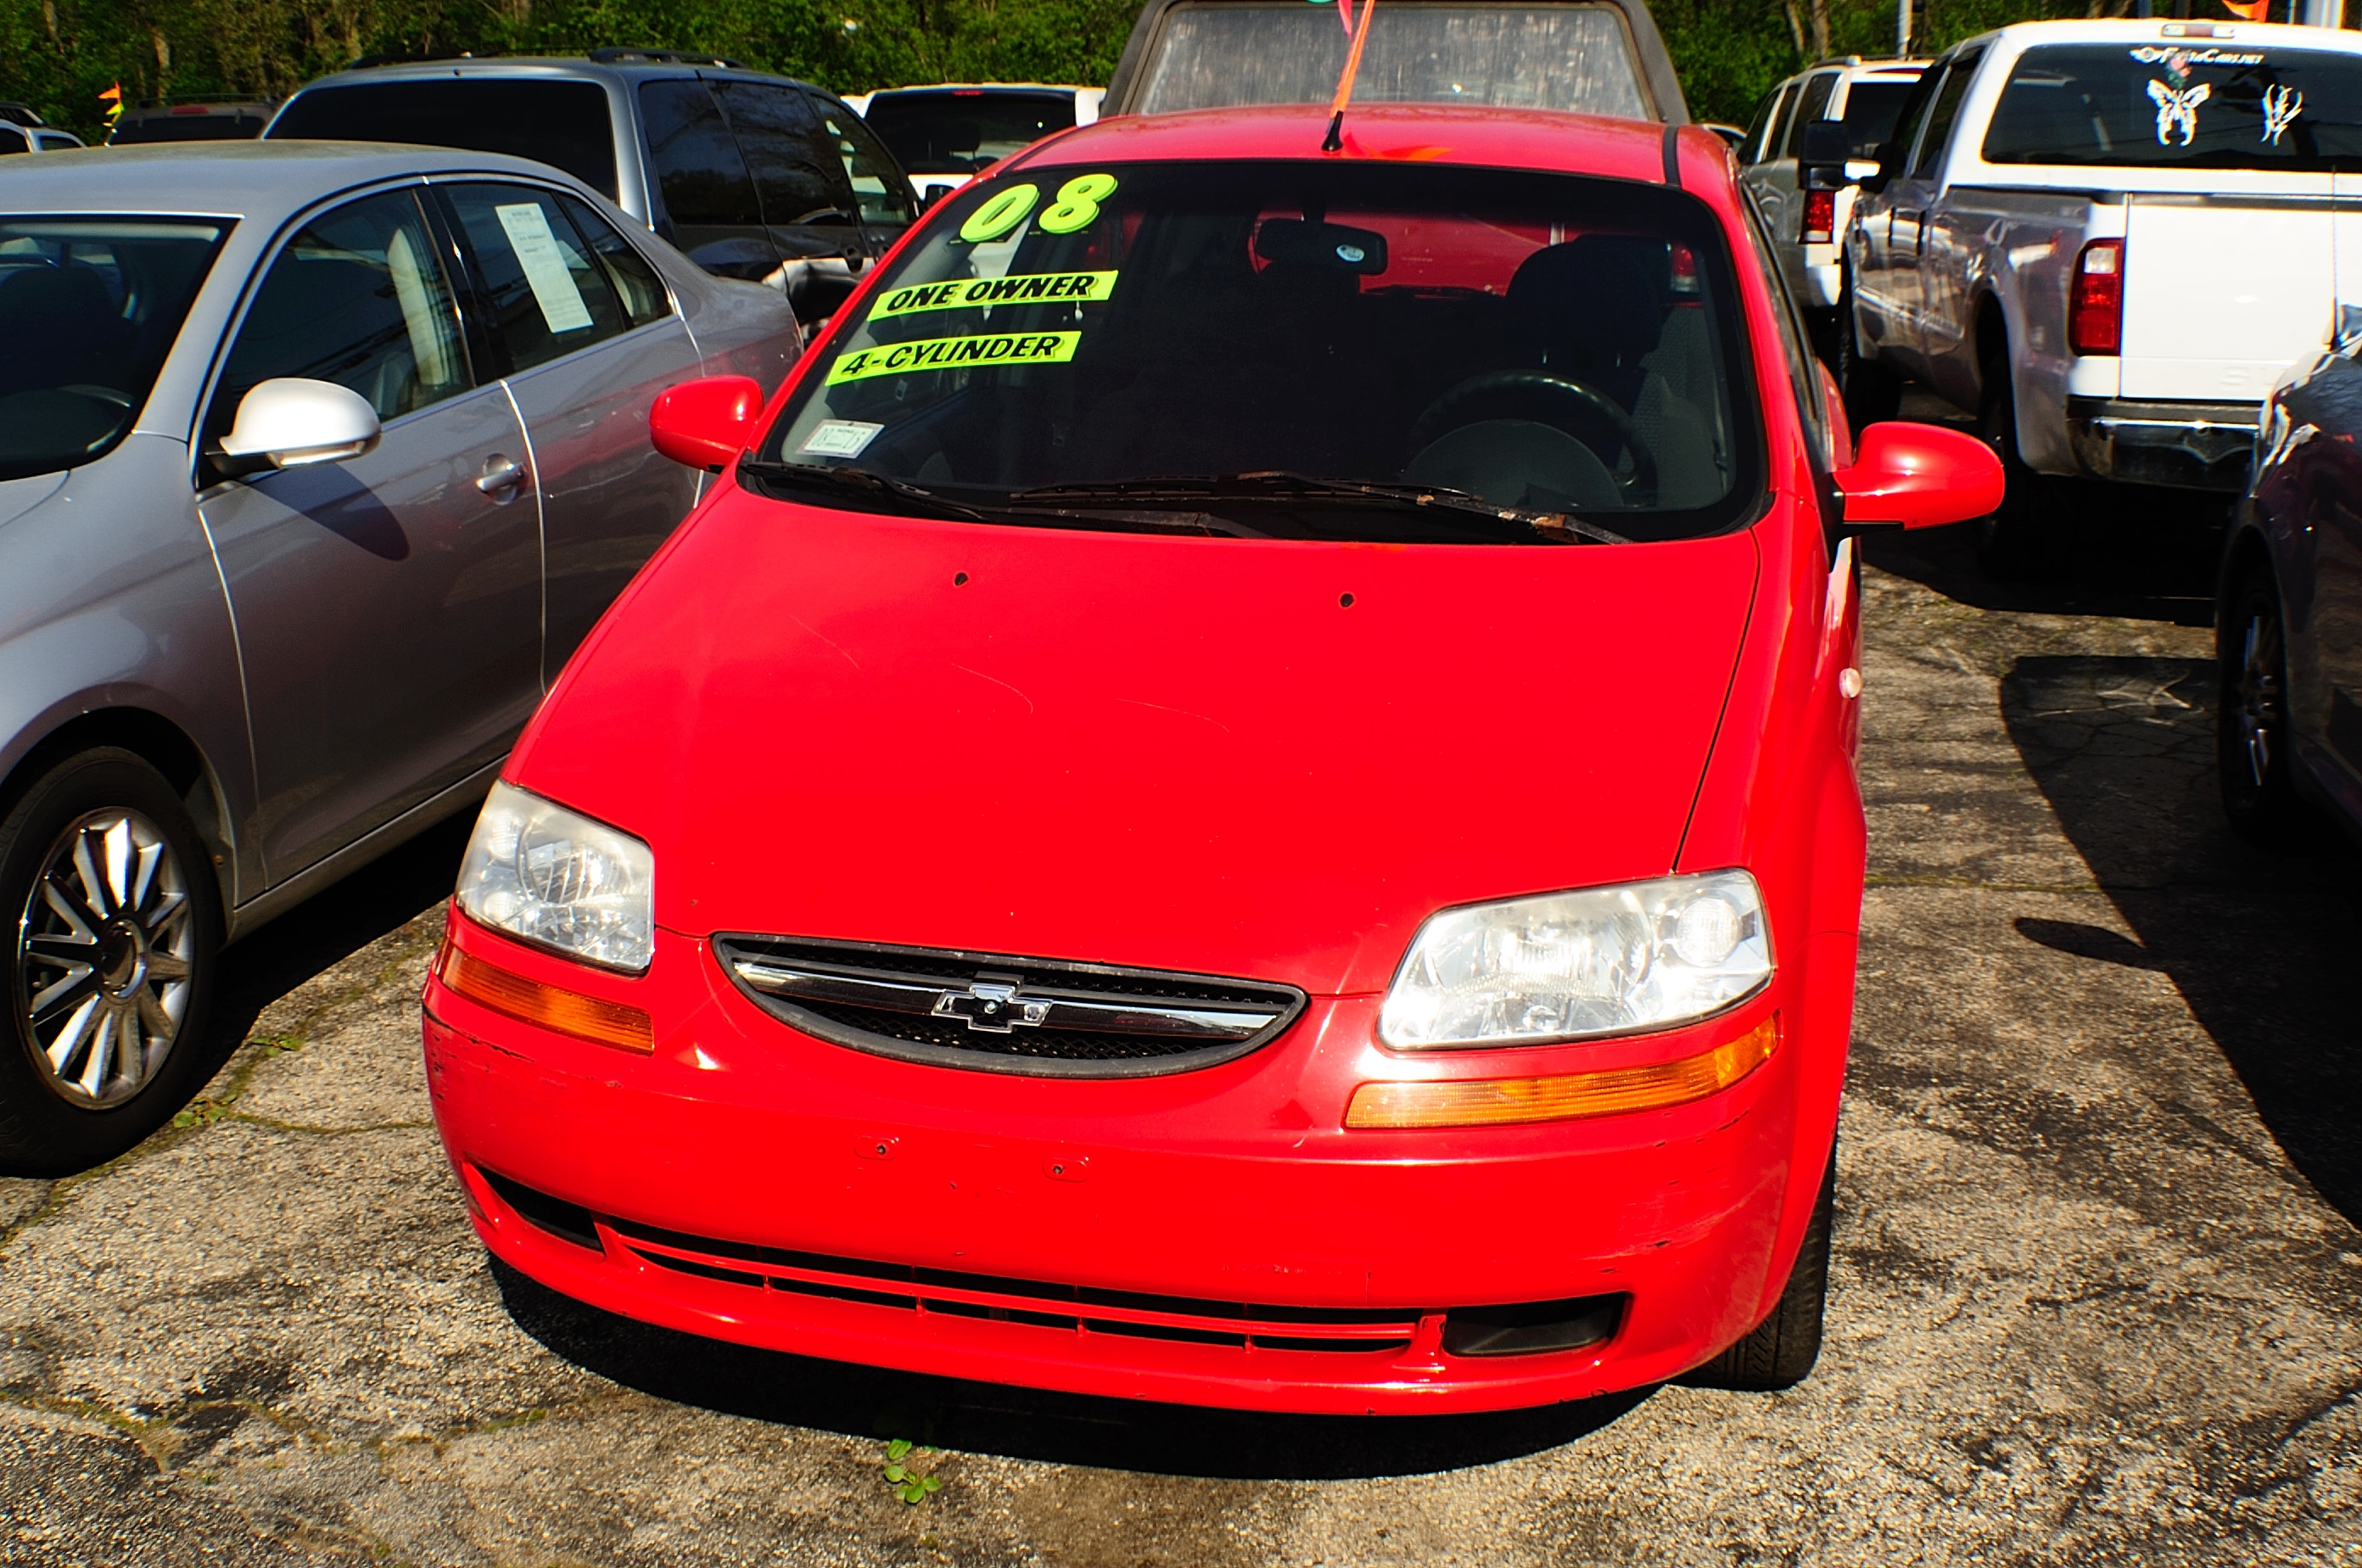 2008 Chevrolet Aveo Red Manual Used Compact car sale Buffalo Grove Bollingbrook Carol Stream